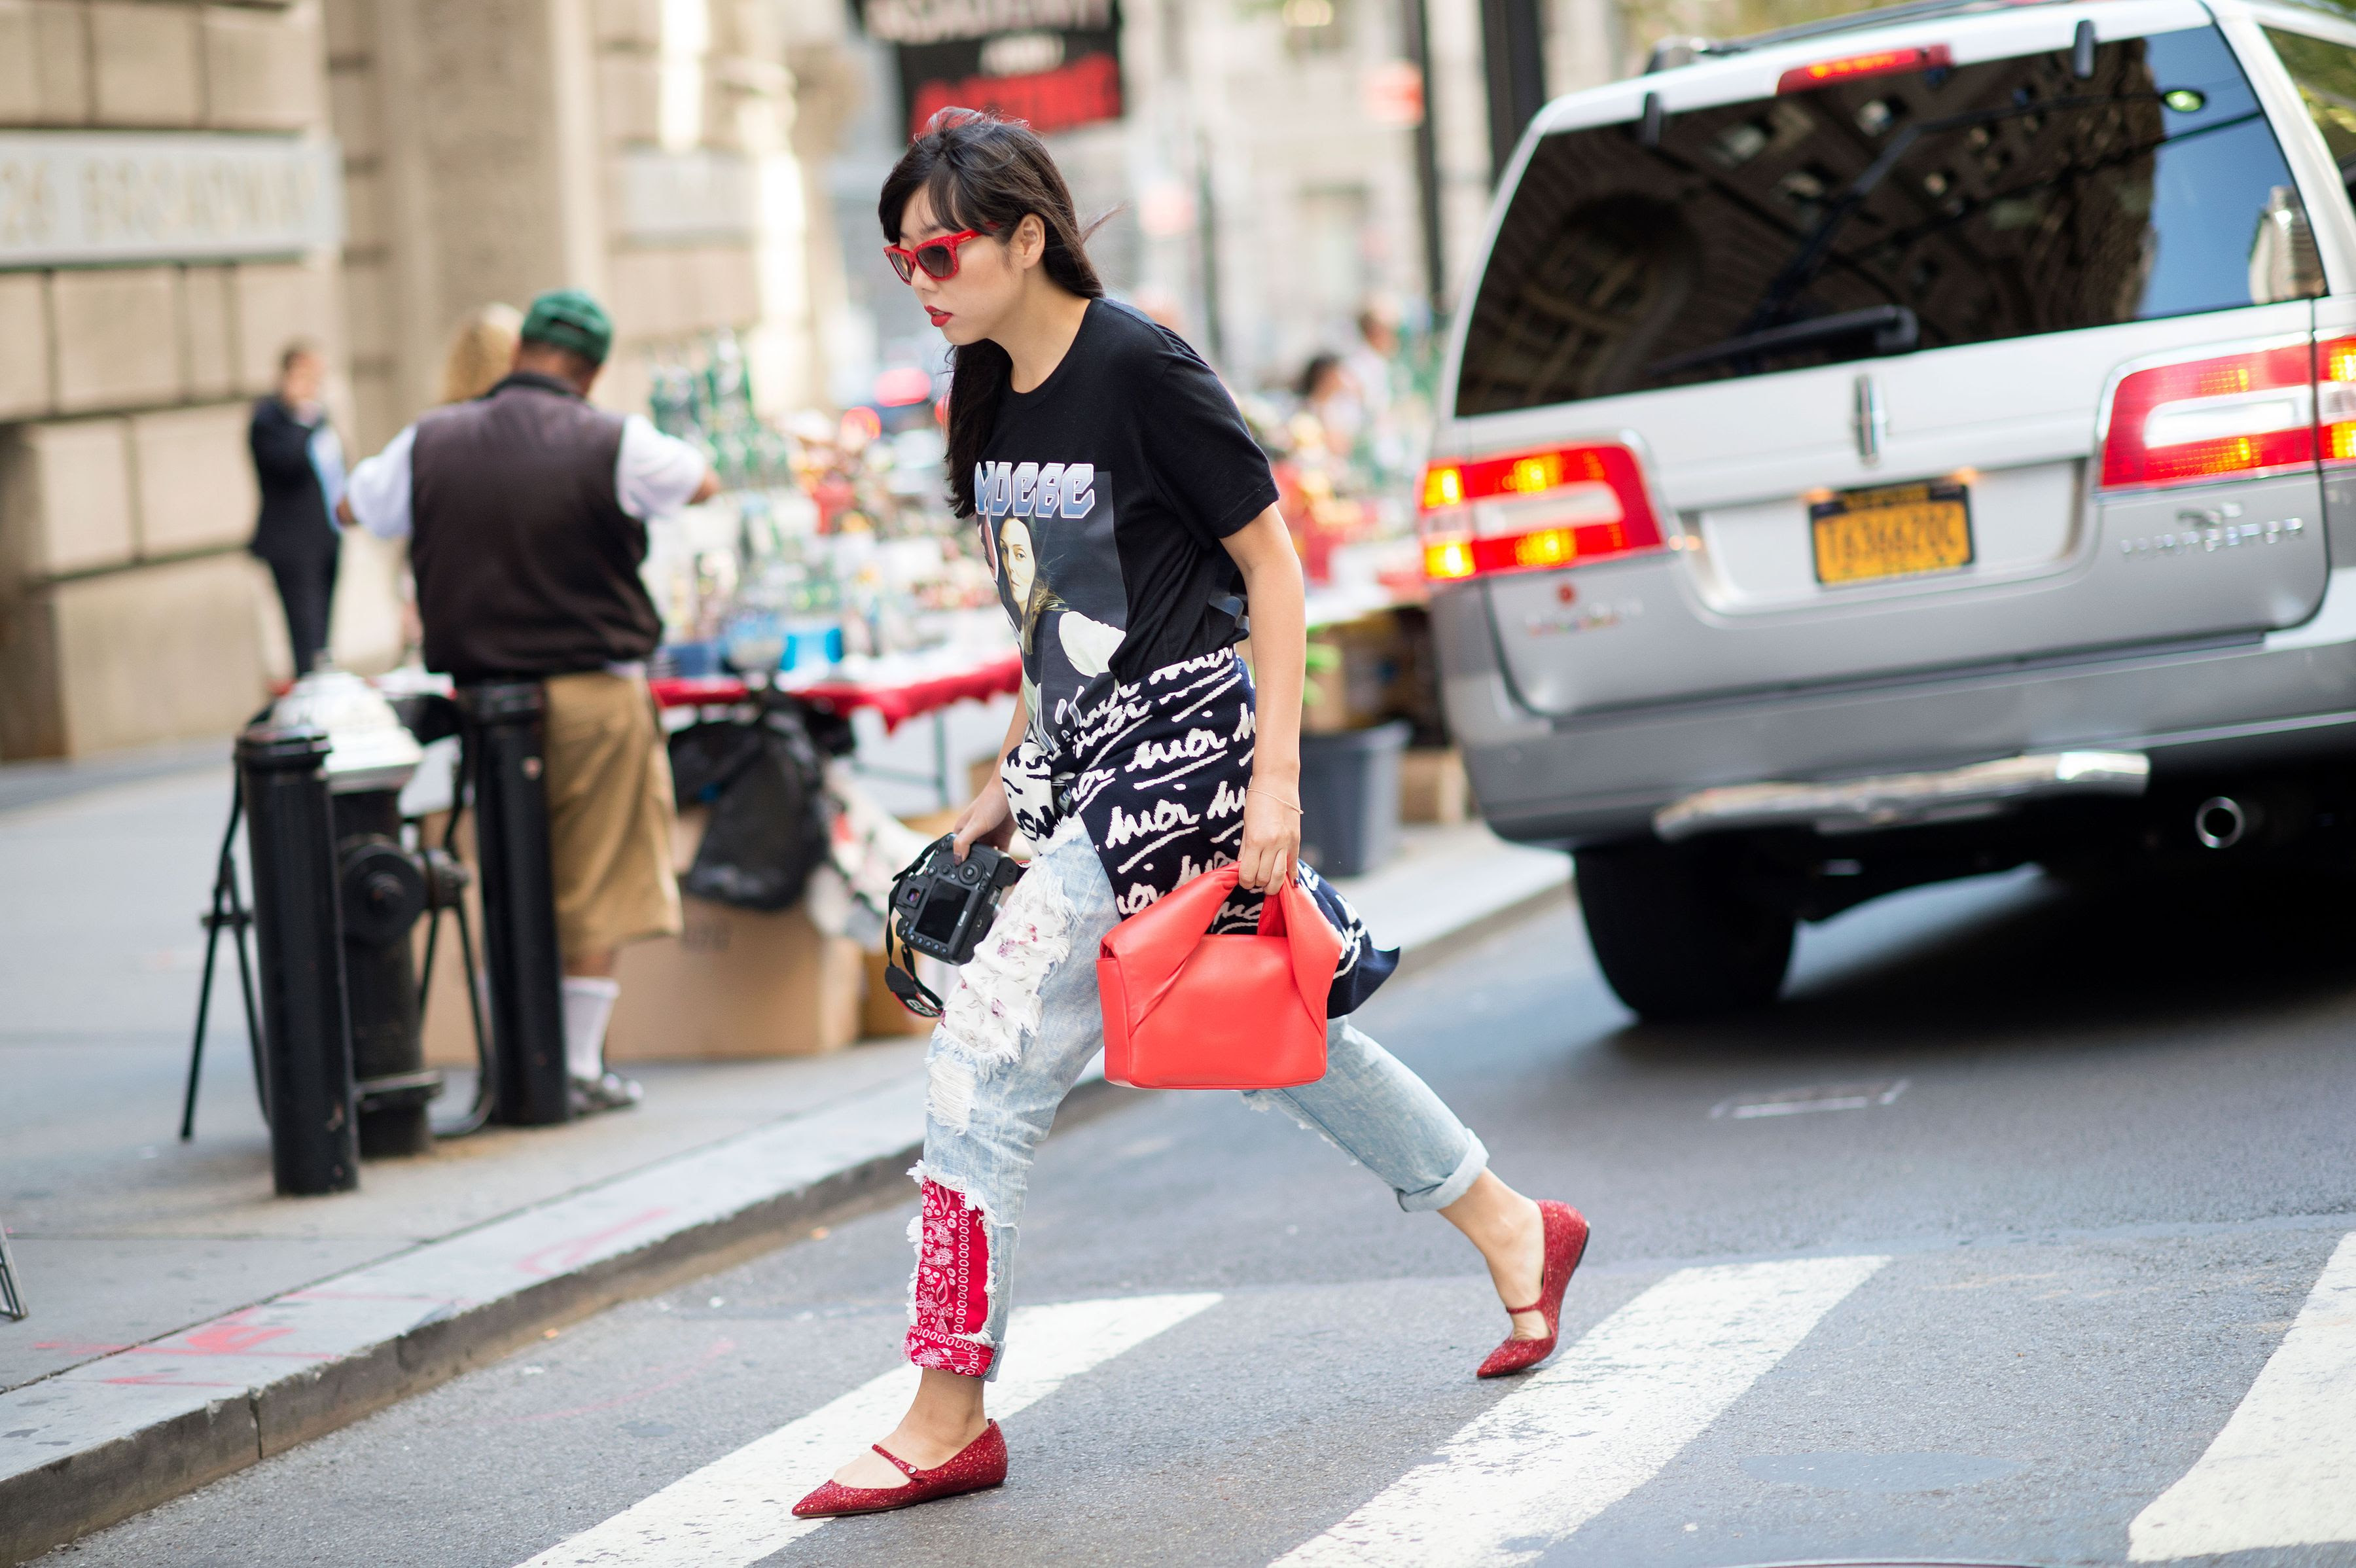 http://pixel.nymag.com/imgs/thecut/slideshows/2014/9/street-style-0907/street-style-07.nocrop.w1800.h1330.2x.jpg